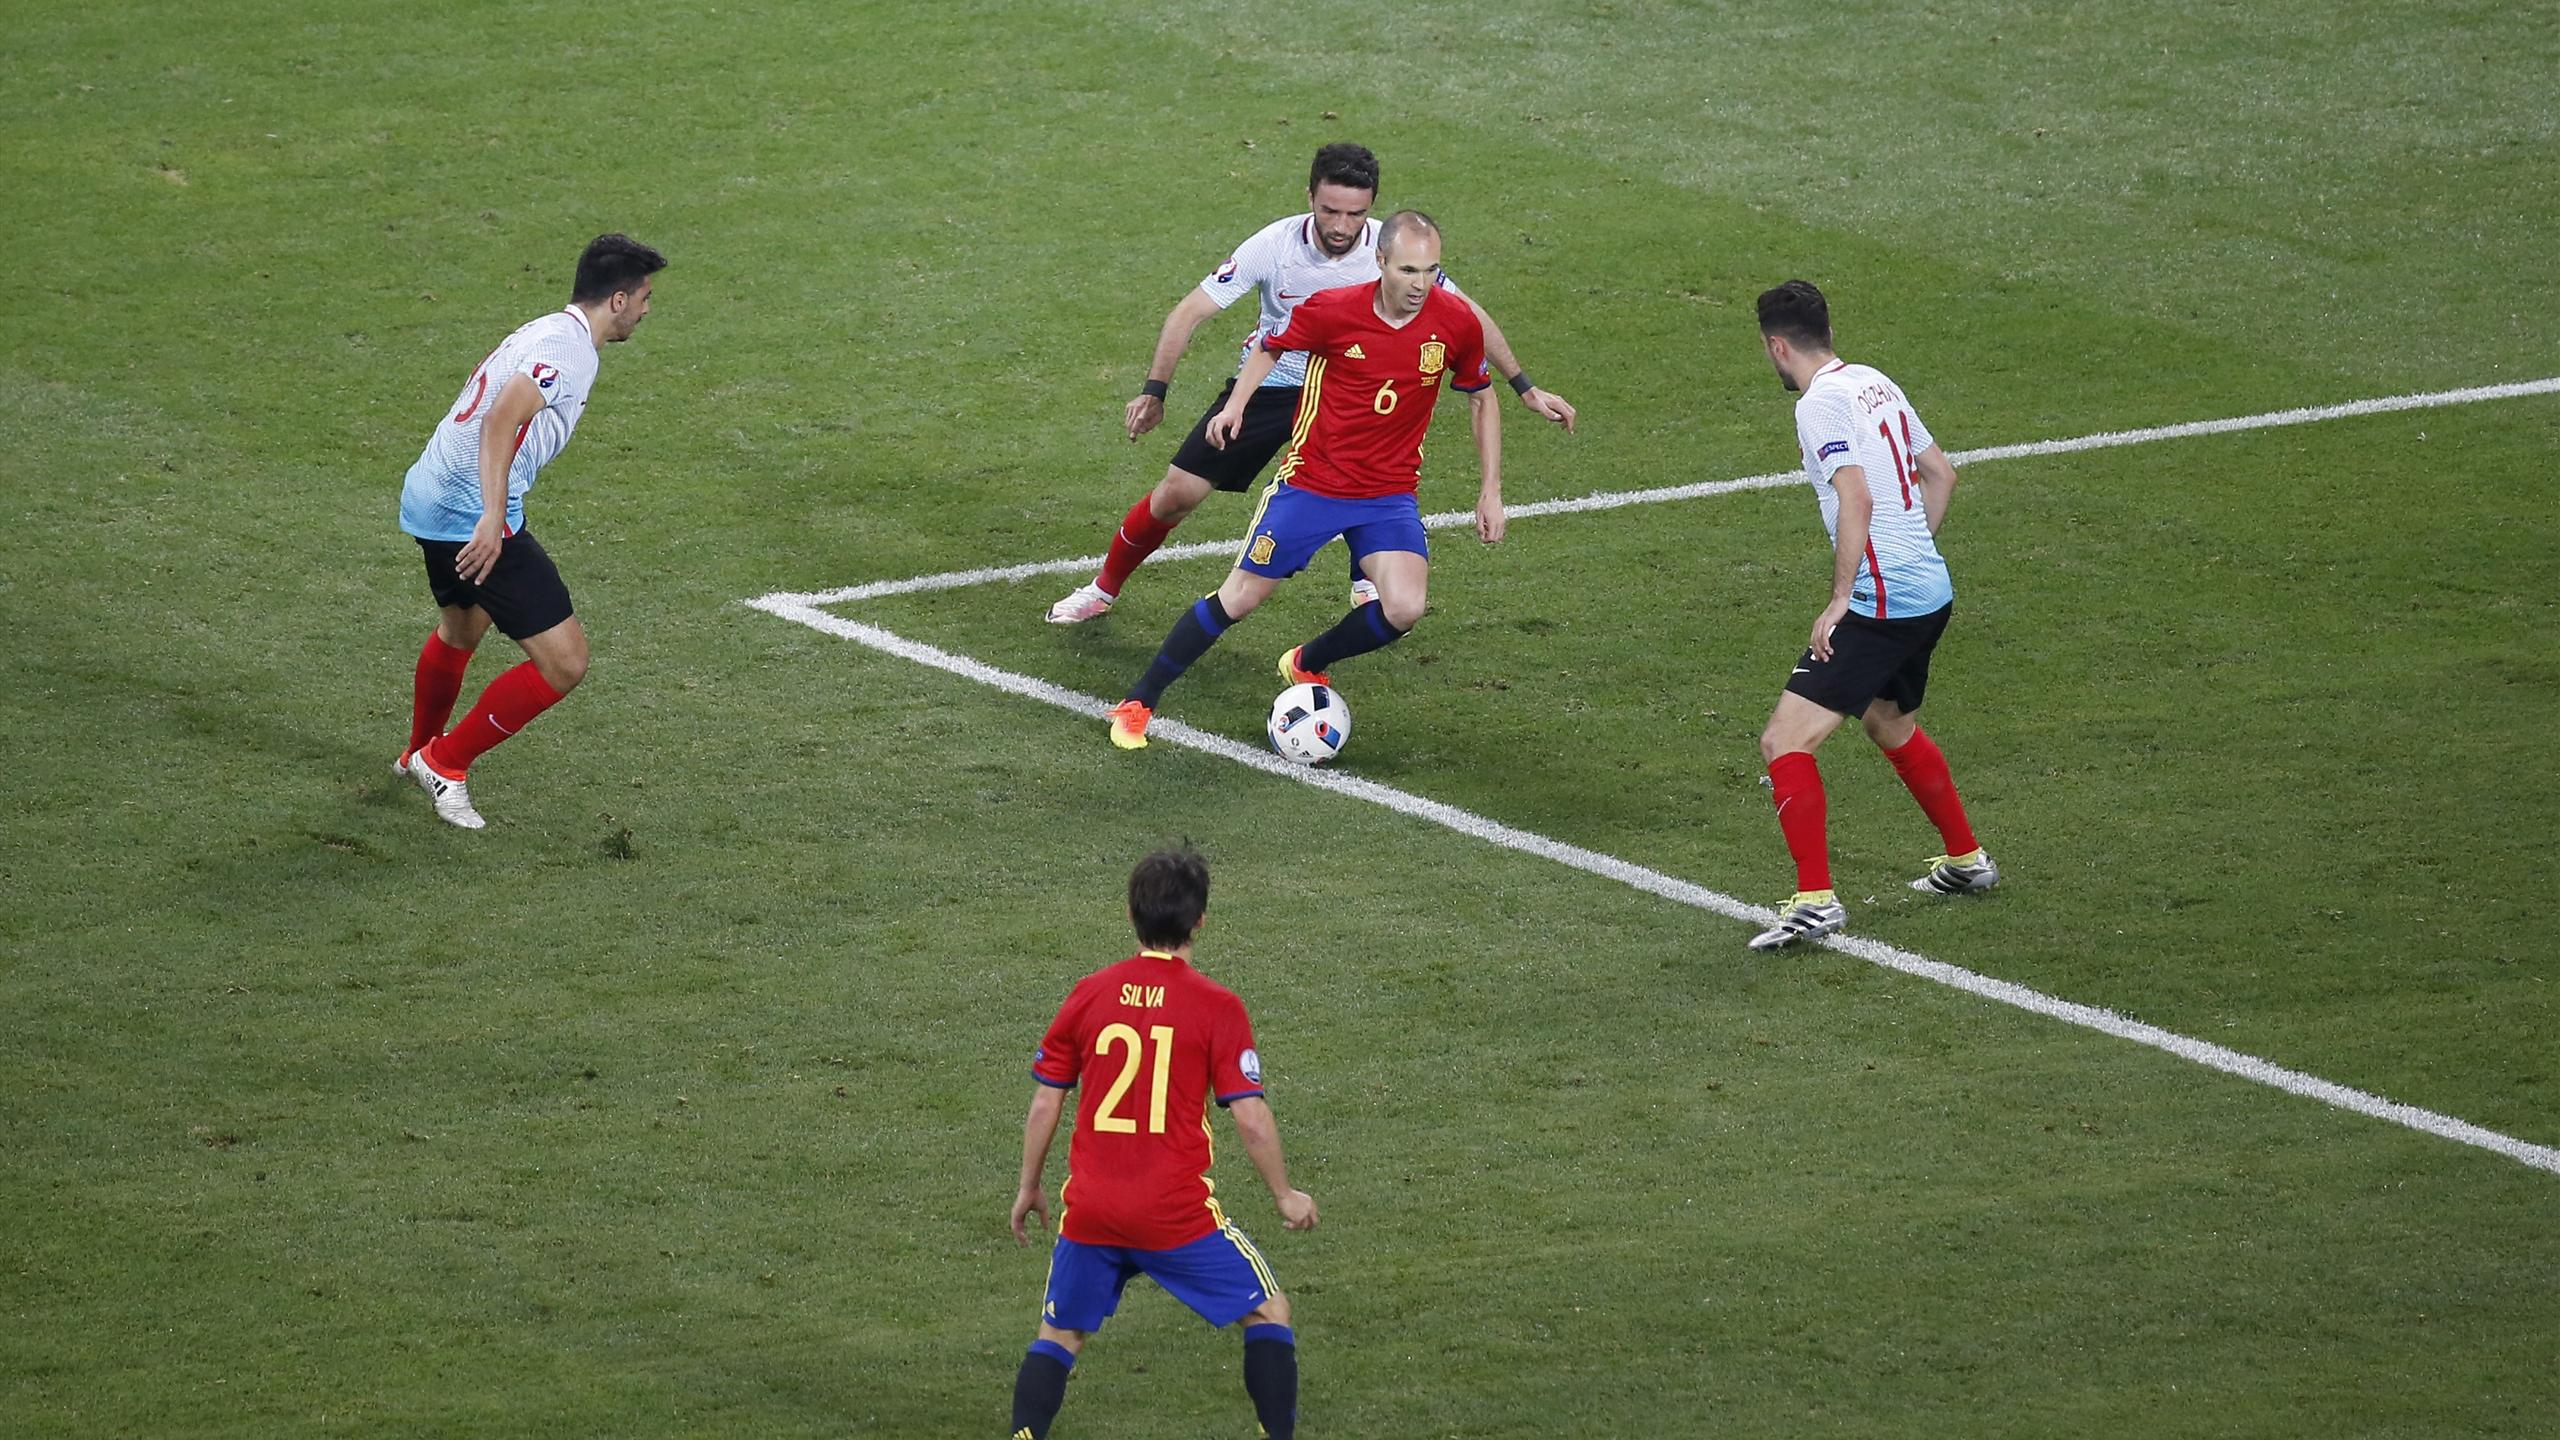 Spain's Andres Iniesta in action with Turkey's Oguzhan Ozyakup, Gokhan Gonul and Ozan Tufan